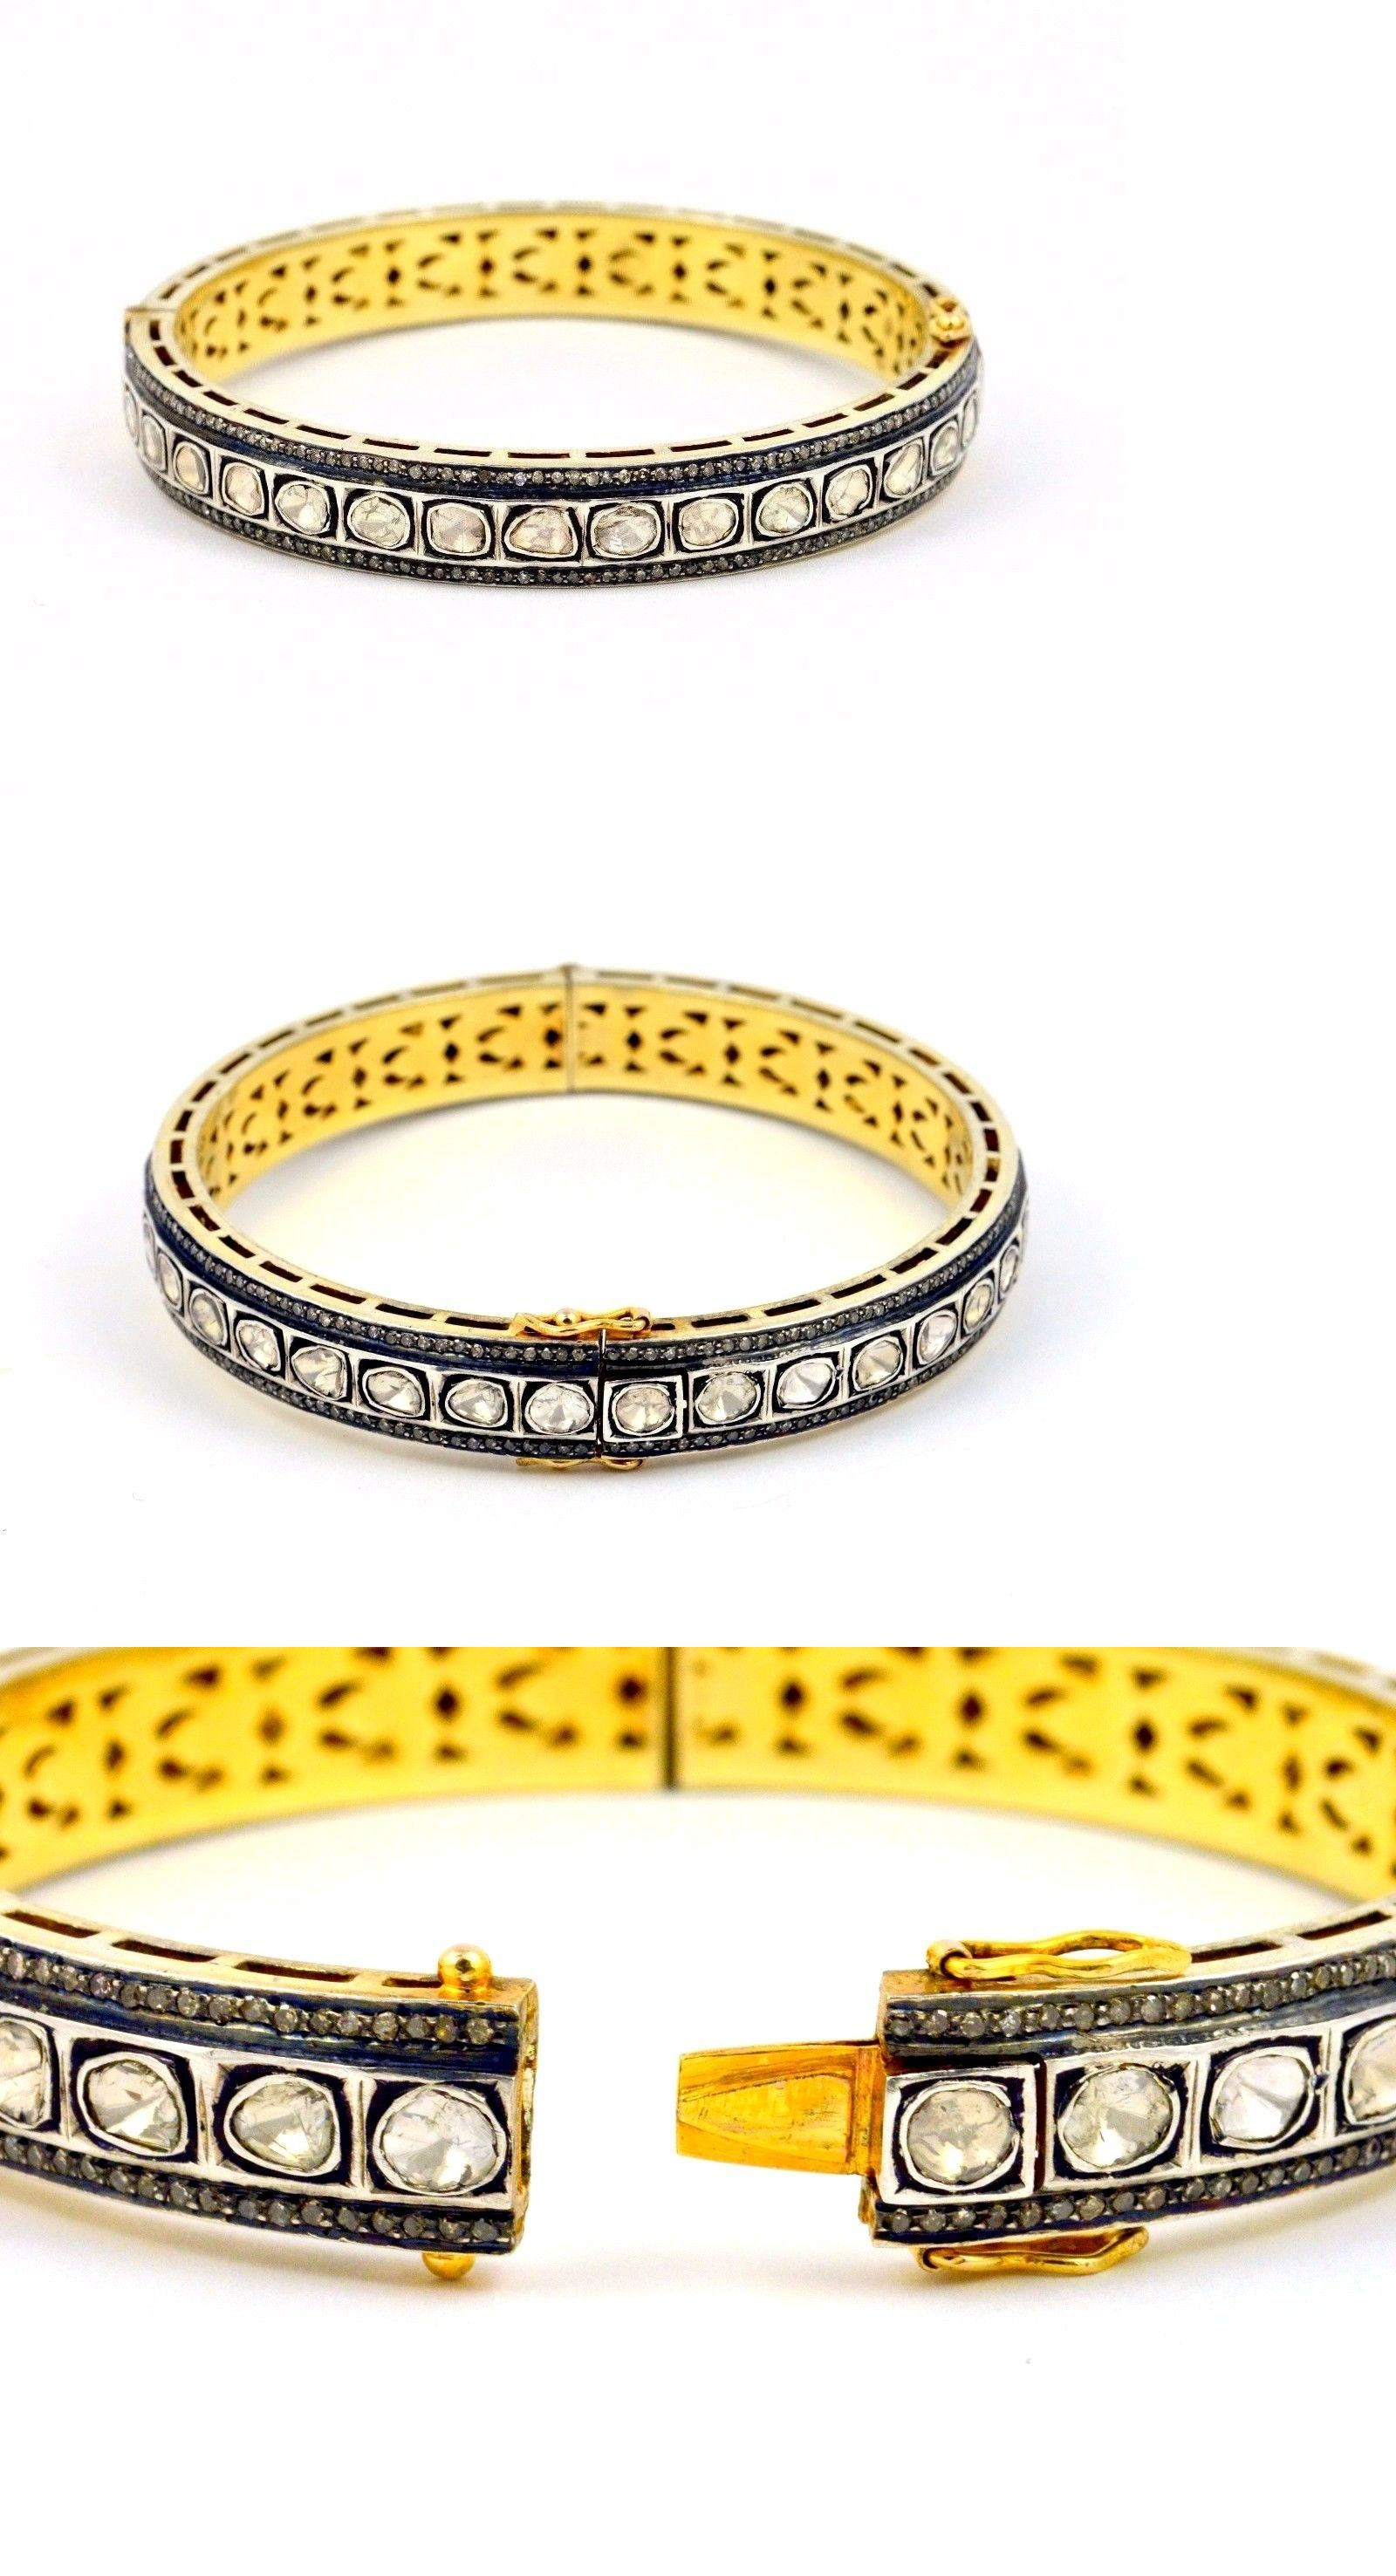 bangles yellow bangle heart j sterling gold with plated asp silver jaz flexible bracelets charm and p mesh bracelet